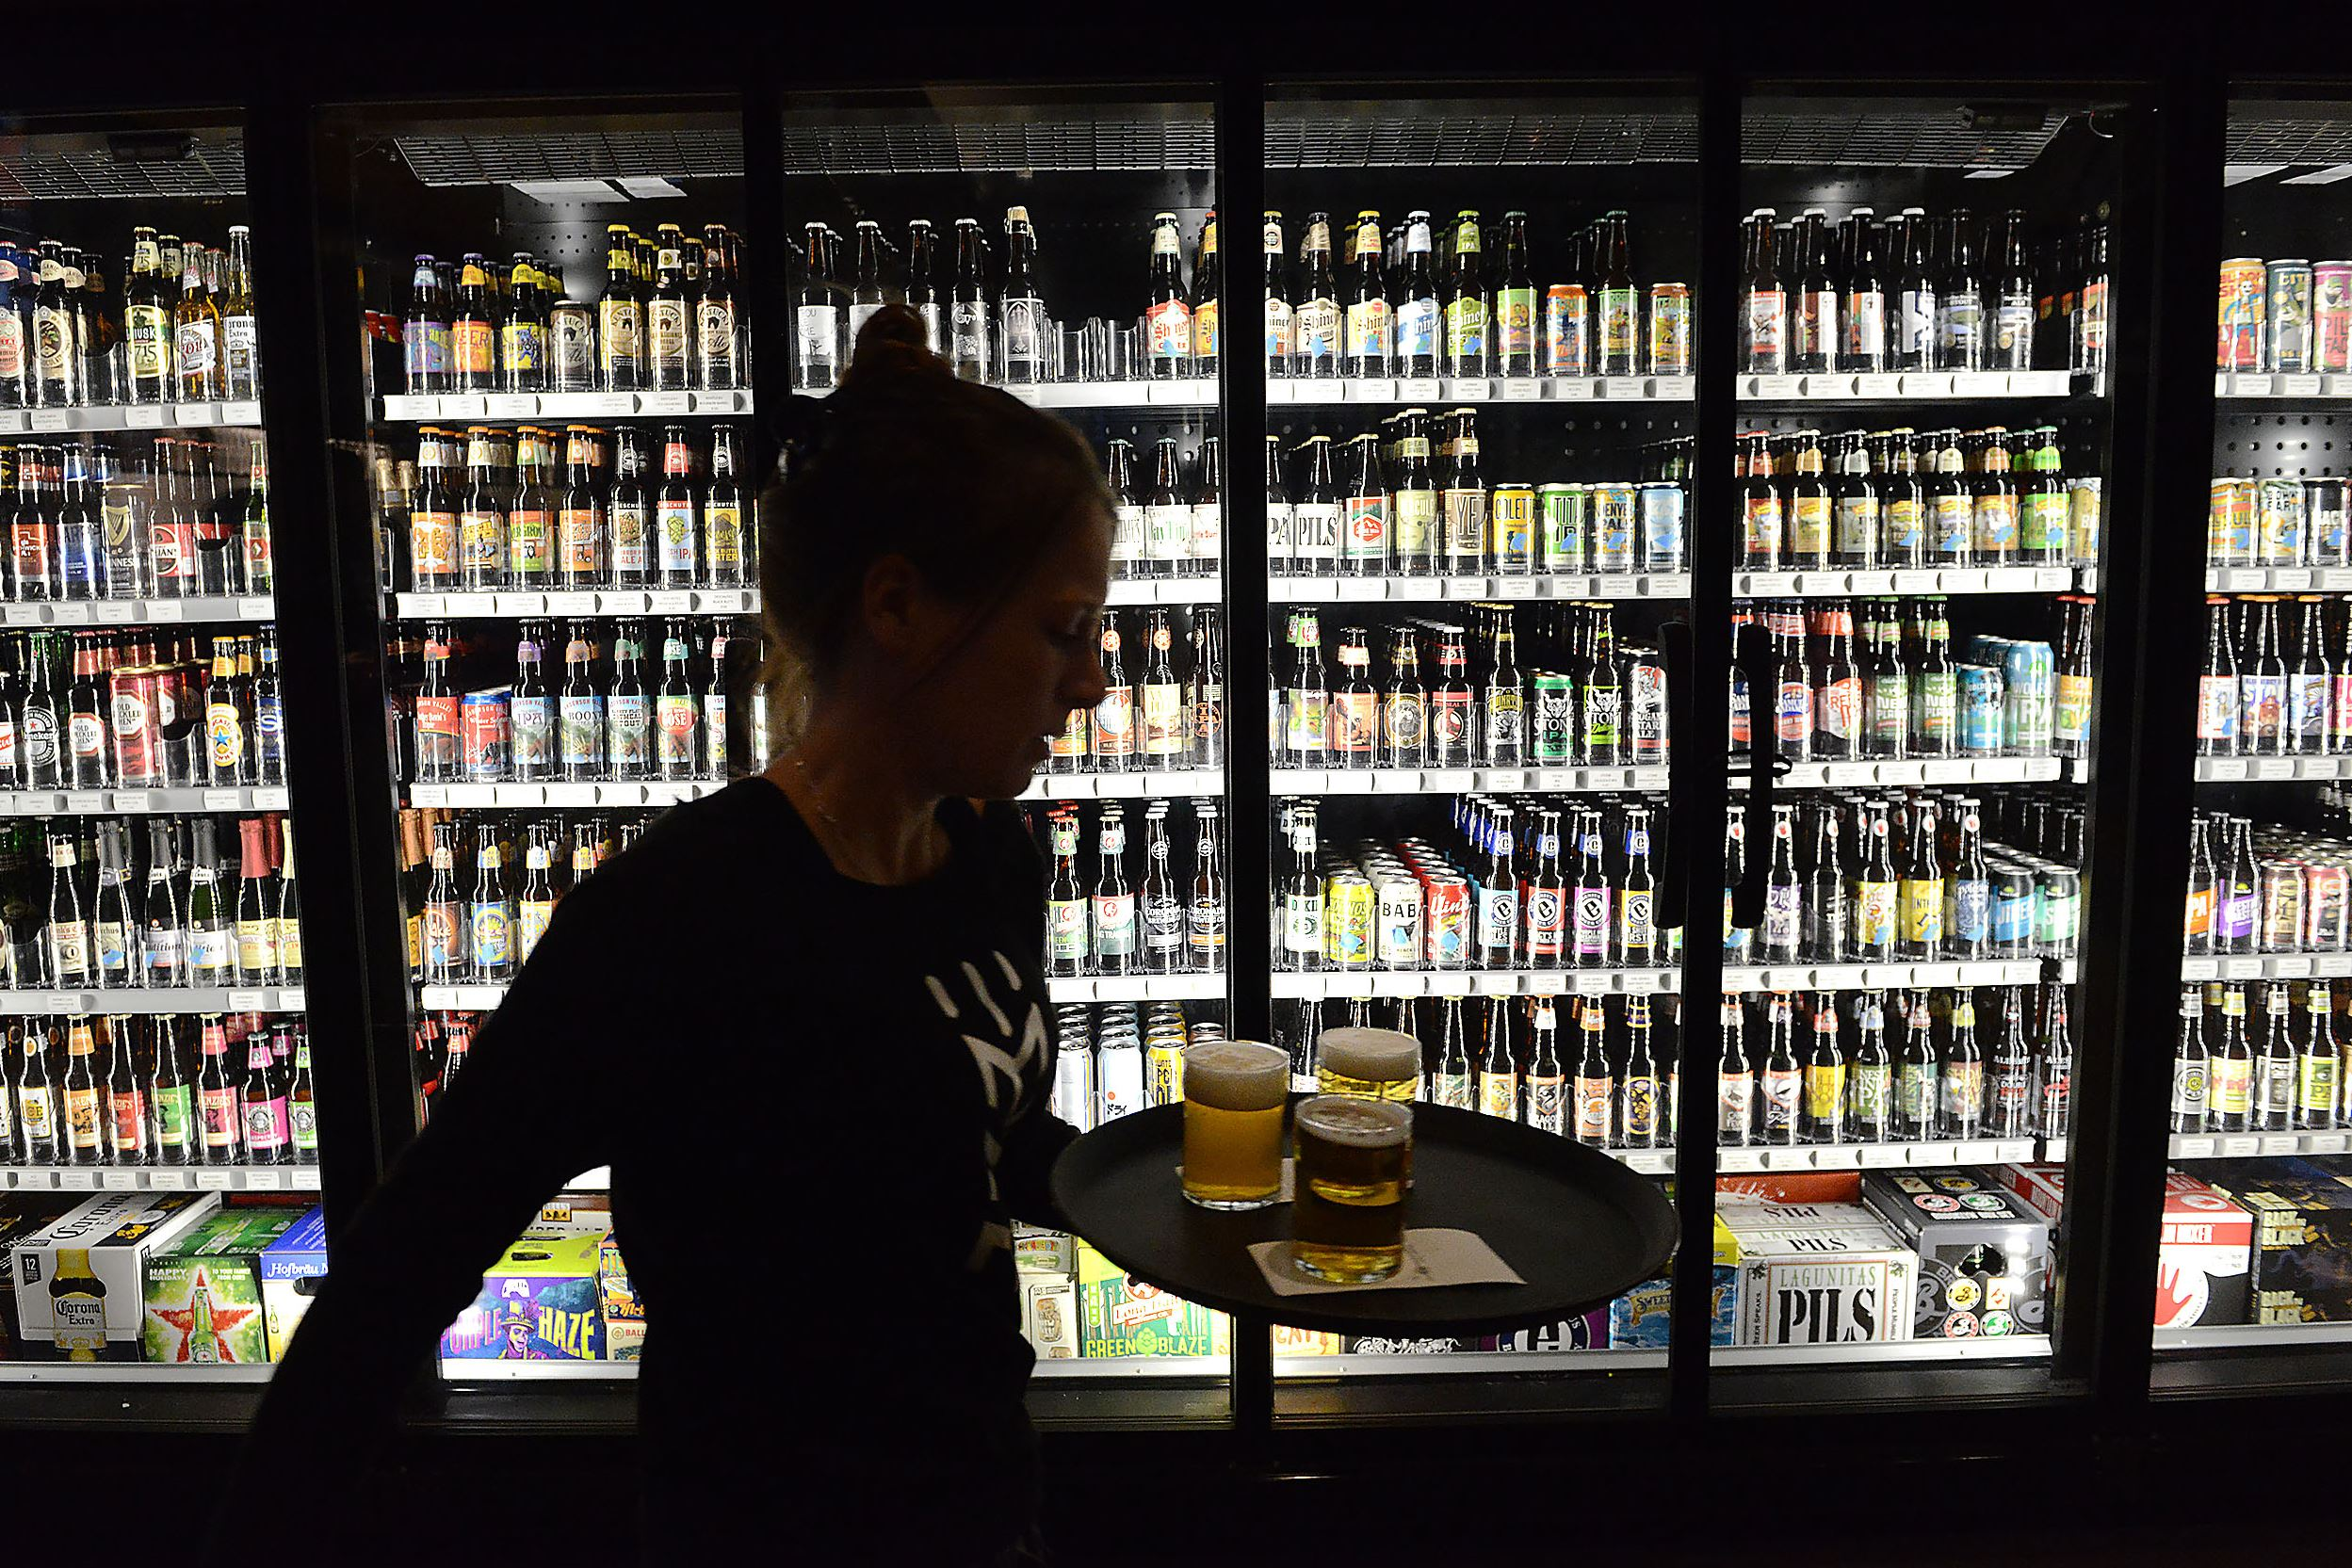 20170110rldMindful02-1 Mindful Brewing Co., housed in the renovated former John McGinnis & Co. grocery store will have 50 beers on tap, eight taps for wine and five for mixed drinks, it will also sell over 1,000 different bottles and cans of beer.